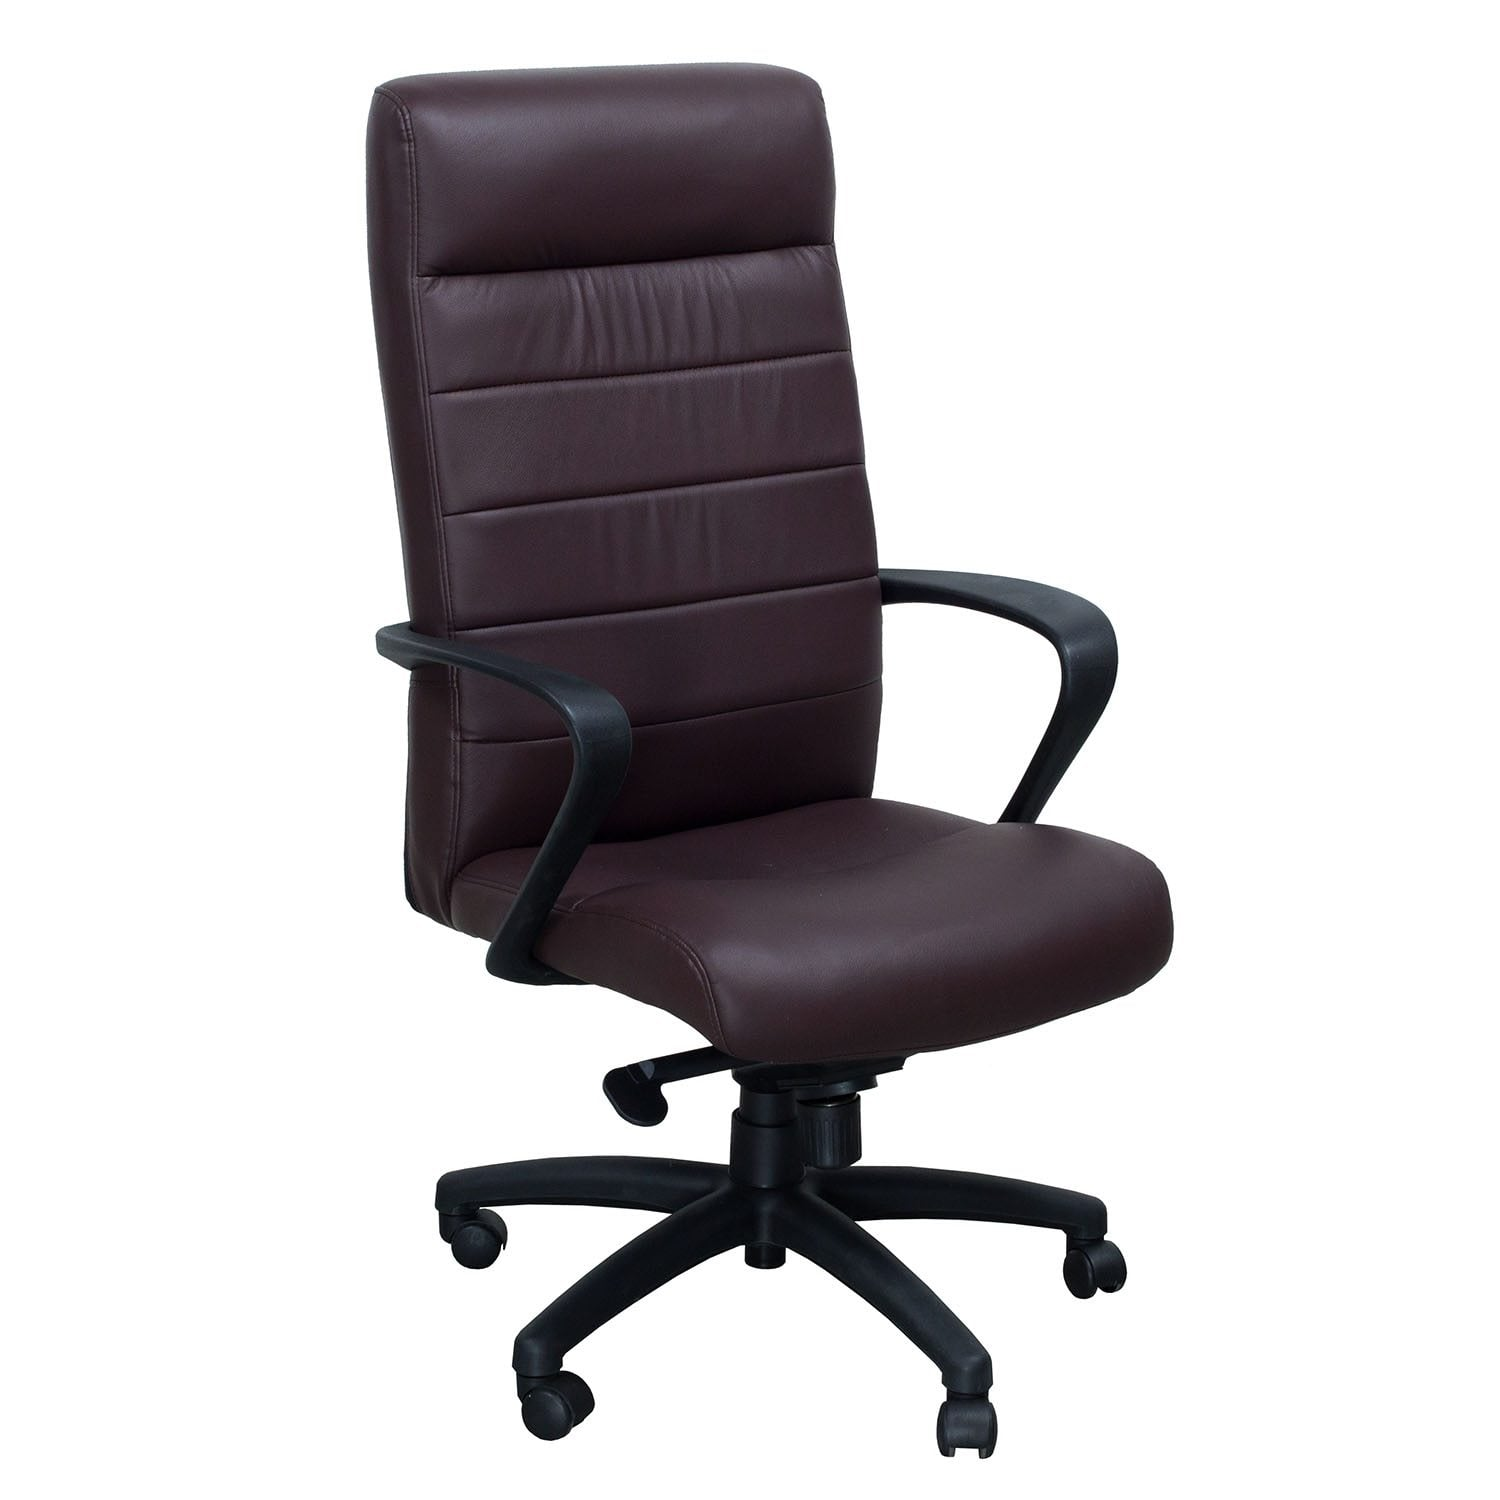 executive brown leather office chairs rent chair covers indianapolis derrick by gosit new task